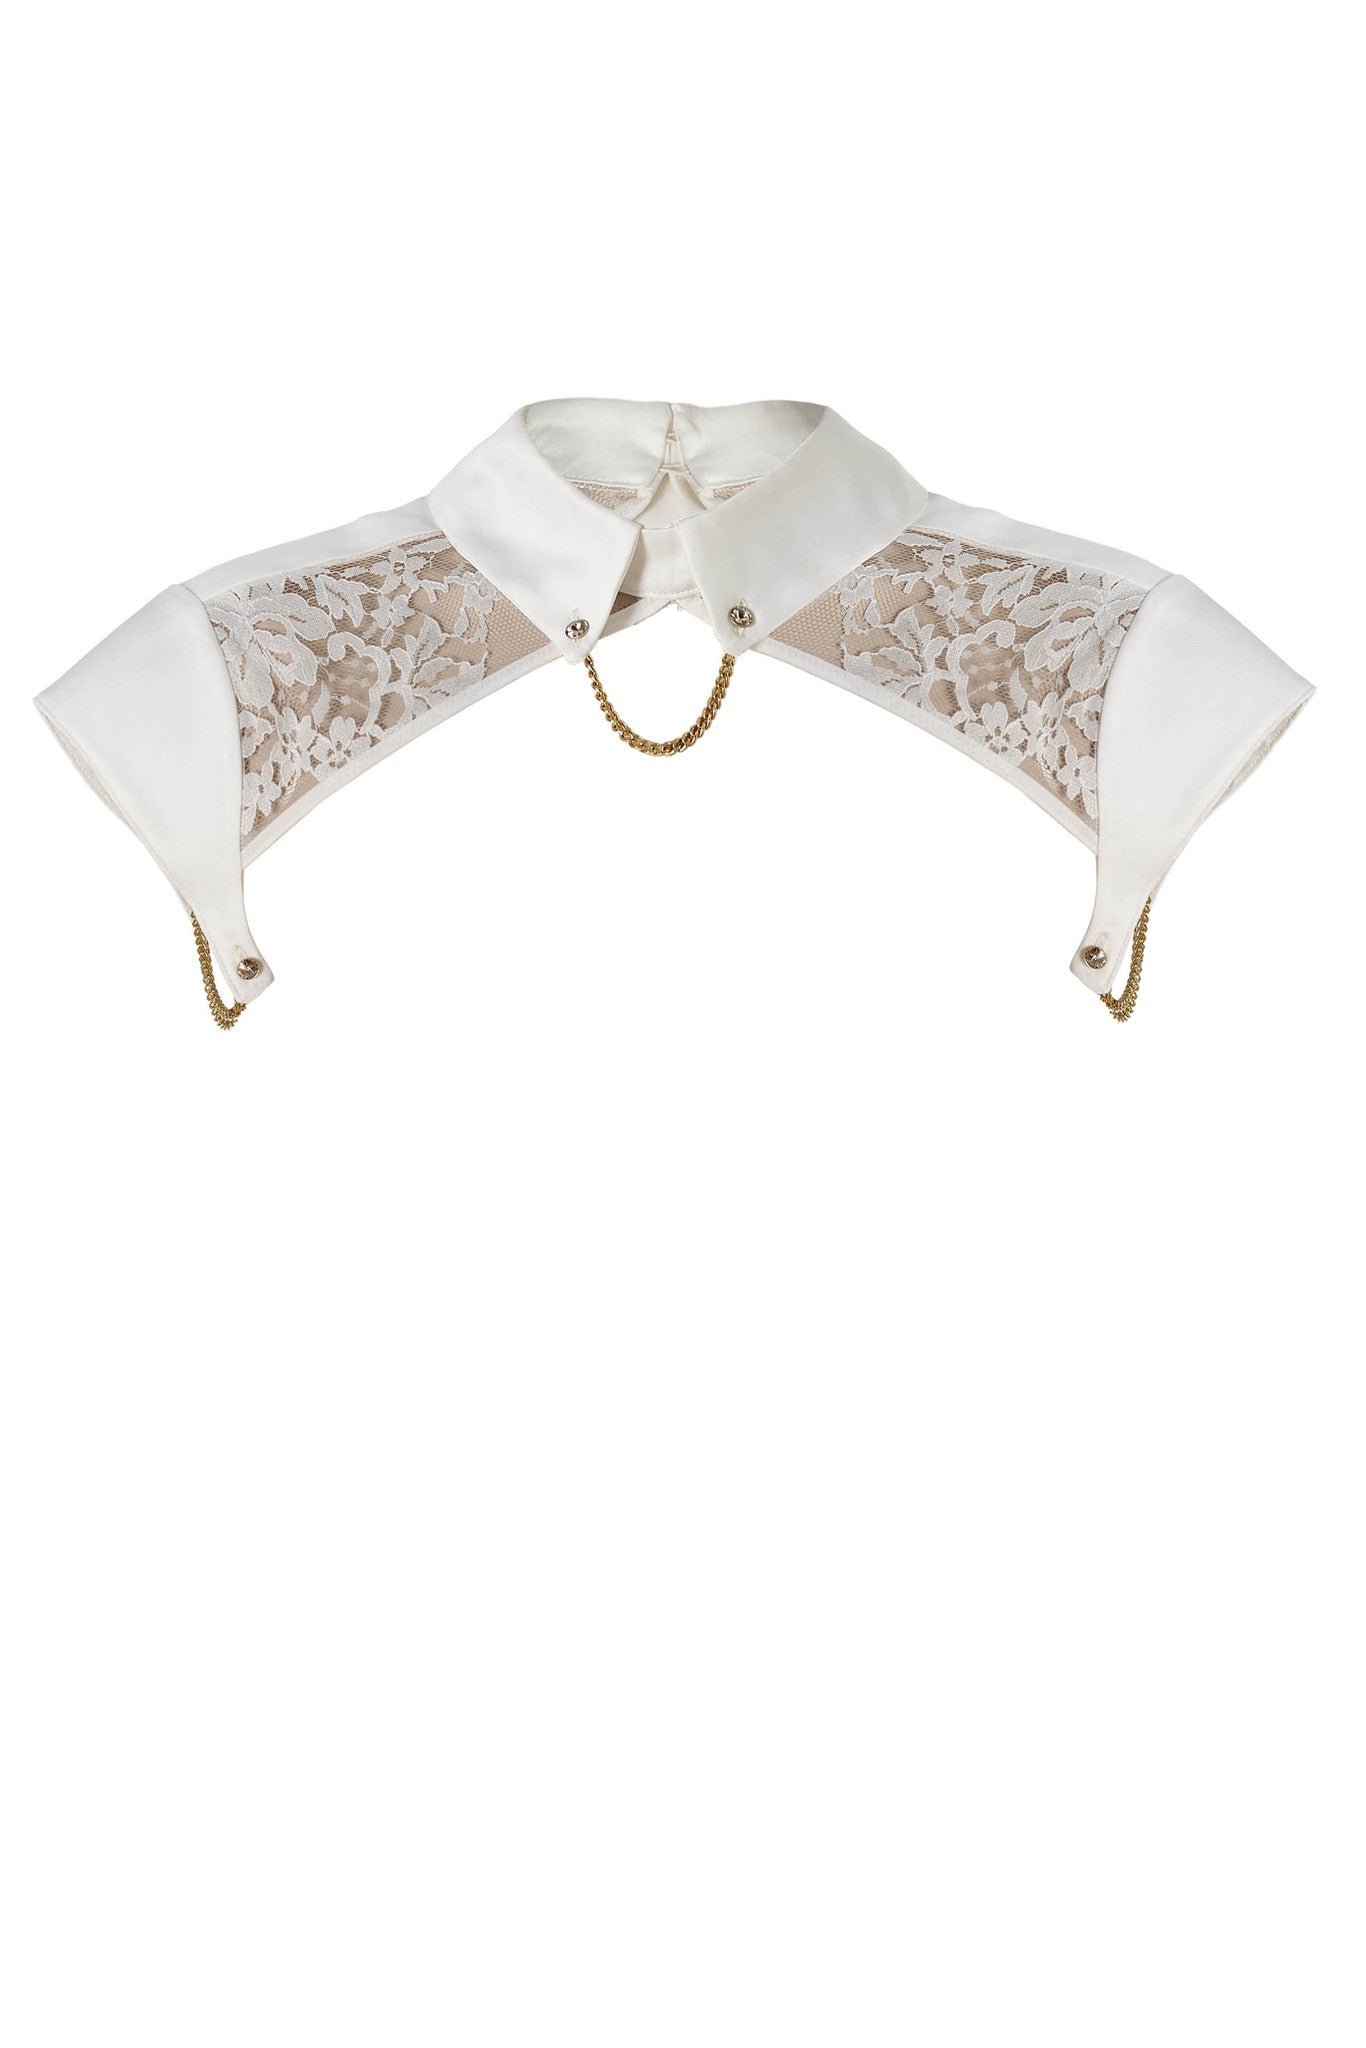 Nadya Collar with Detachable thong and Suspenders -  Featuring Swarovski® crystals.